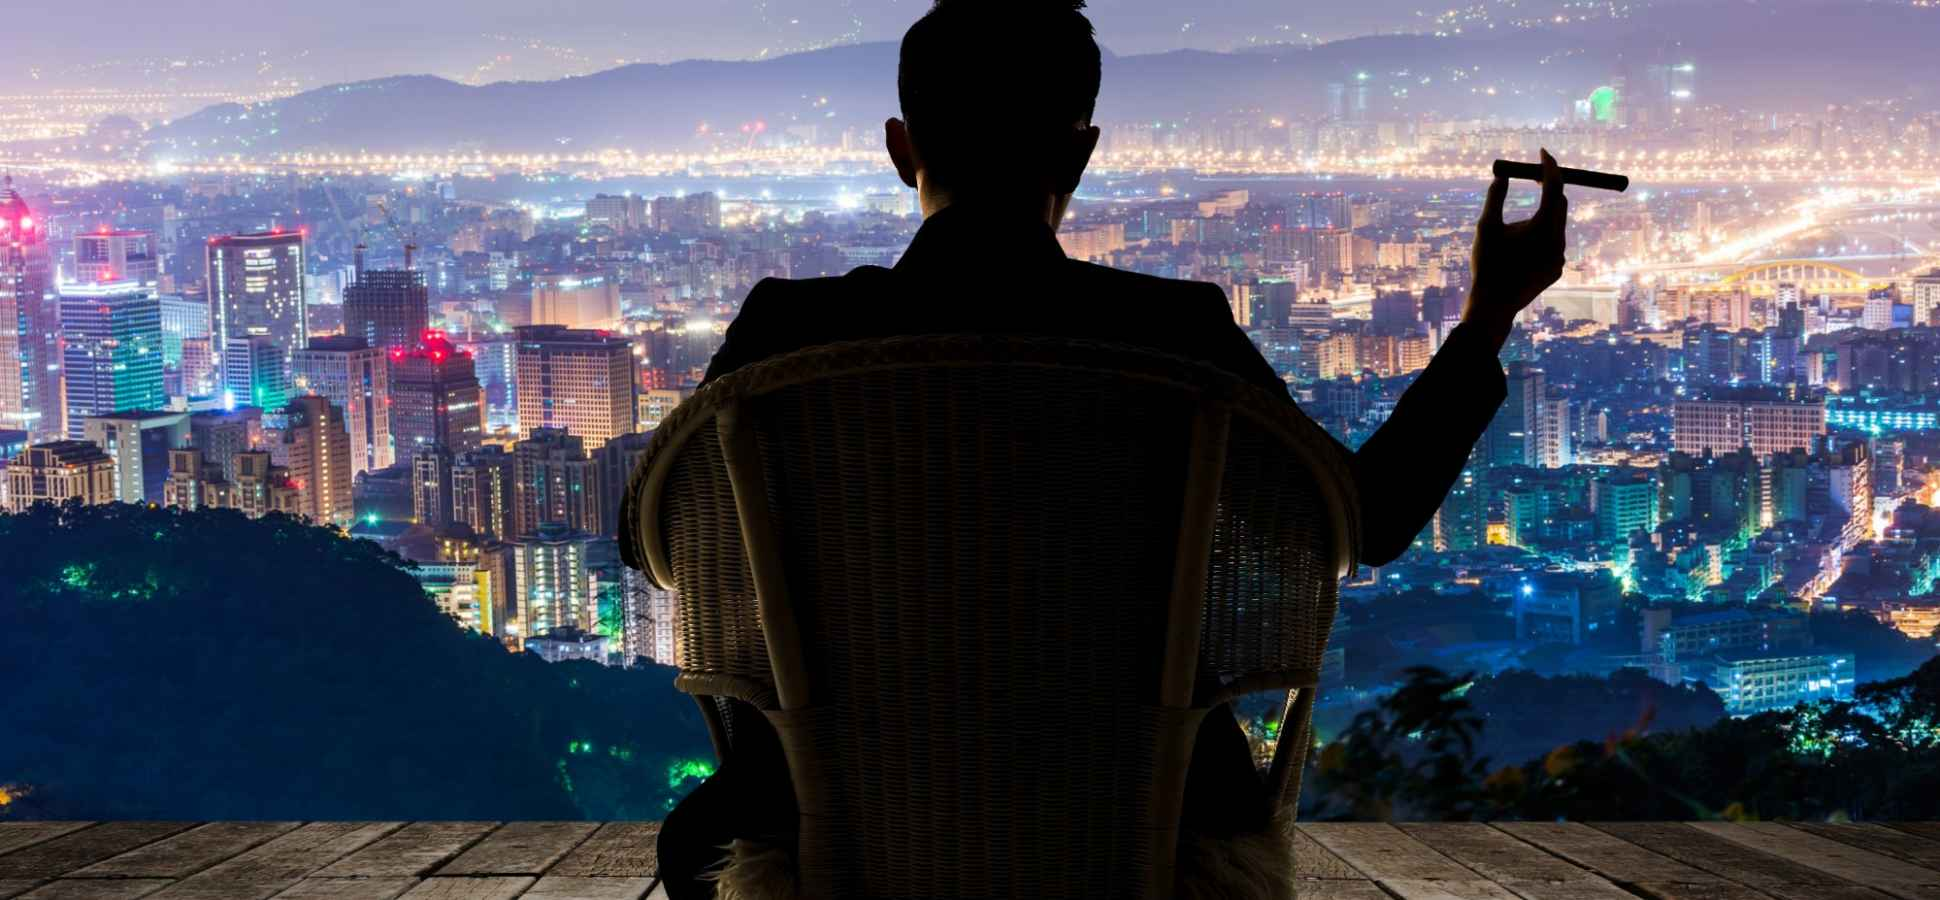 Achieving Success Can Be Boiled Down To These 5 Basic Things